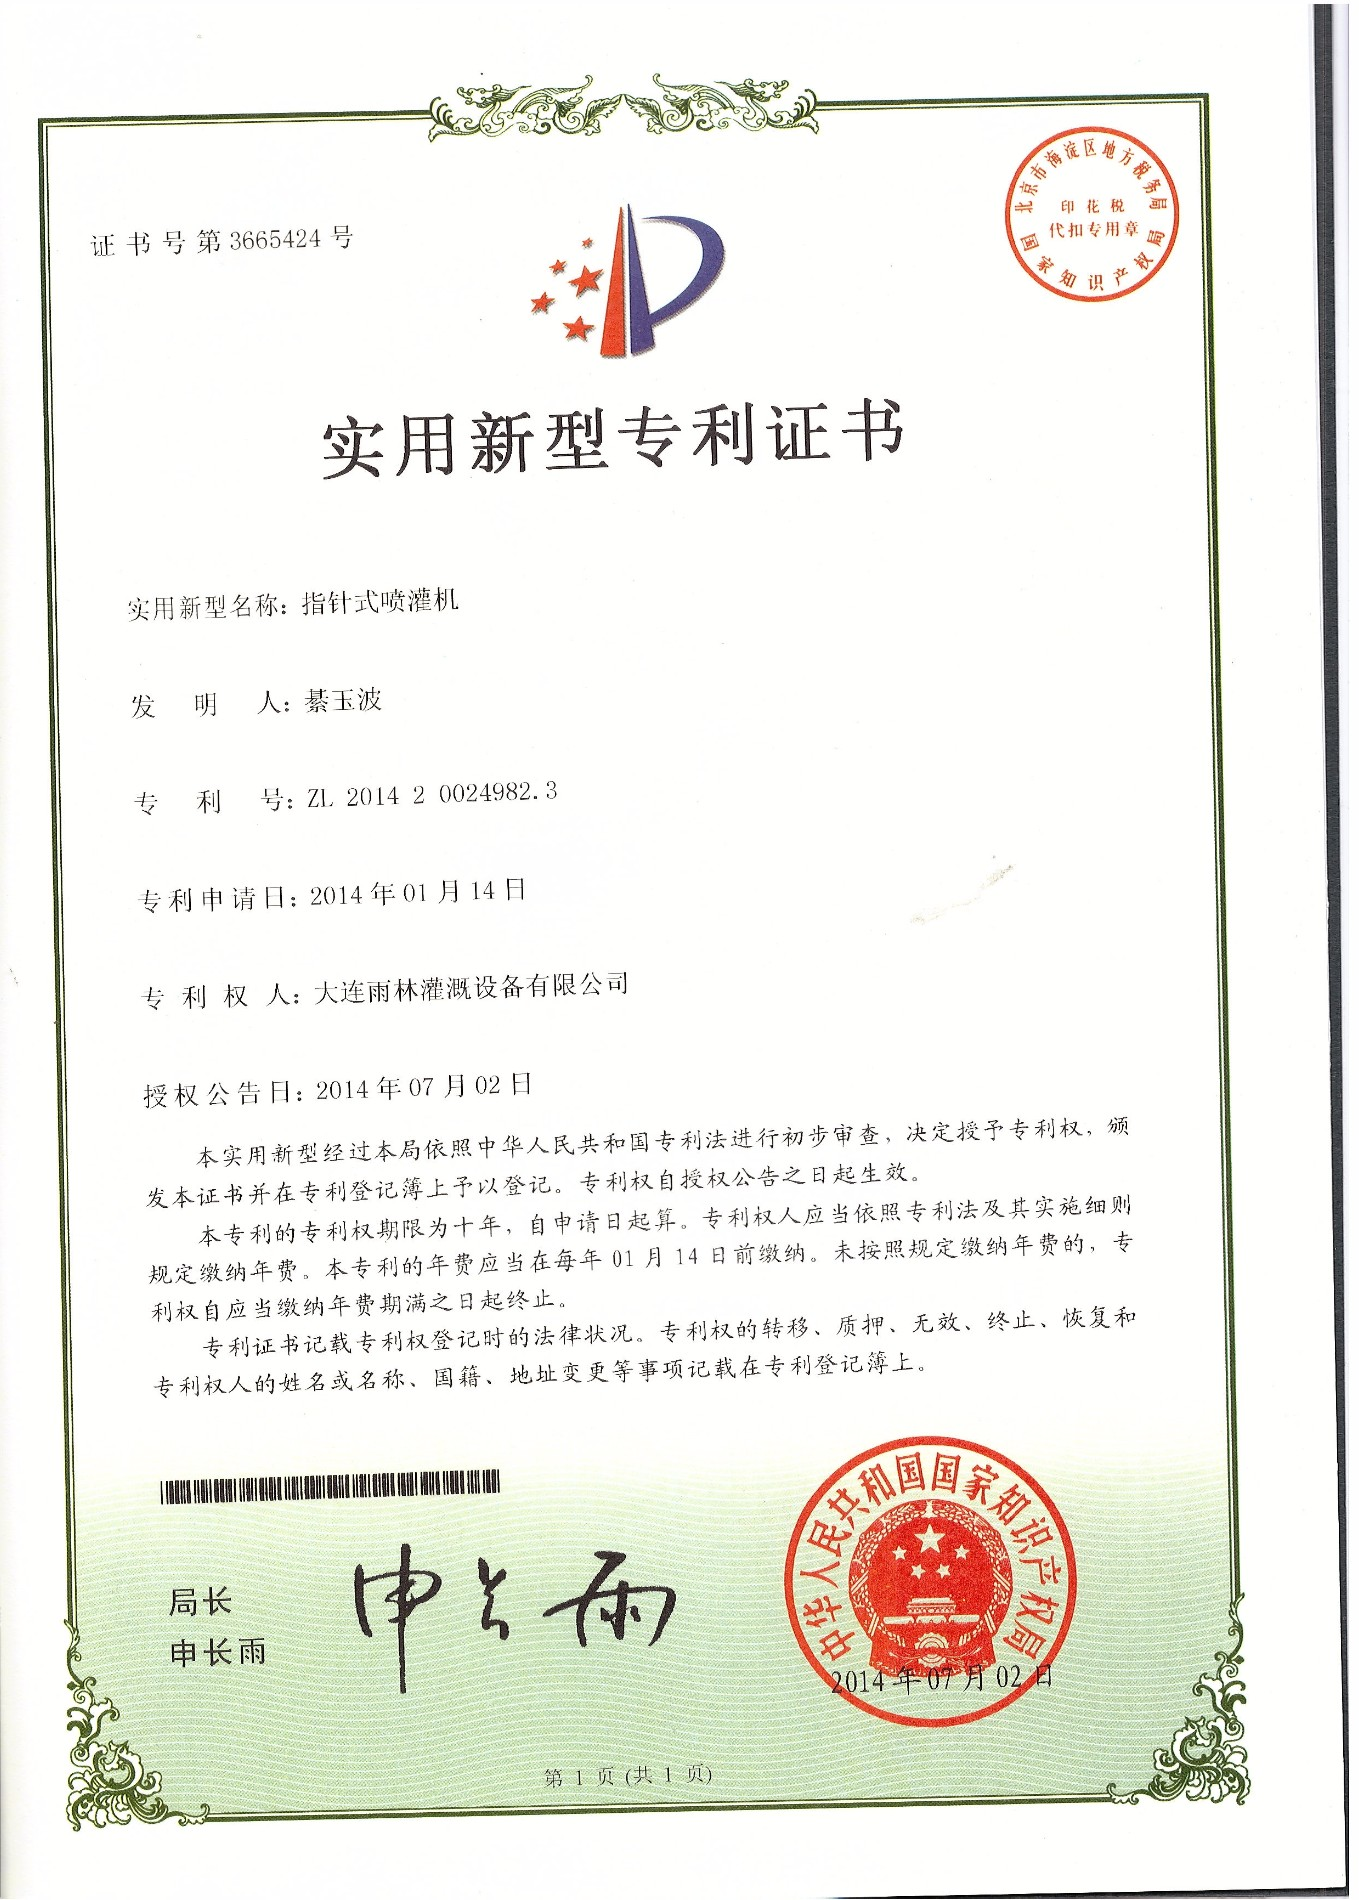 patent for utility models of DYP by State Intellectual Property Office of the People's Republic of China